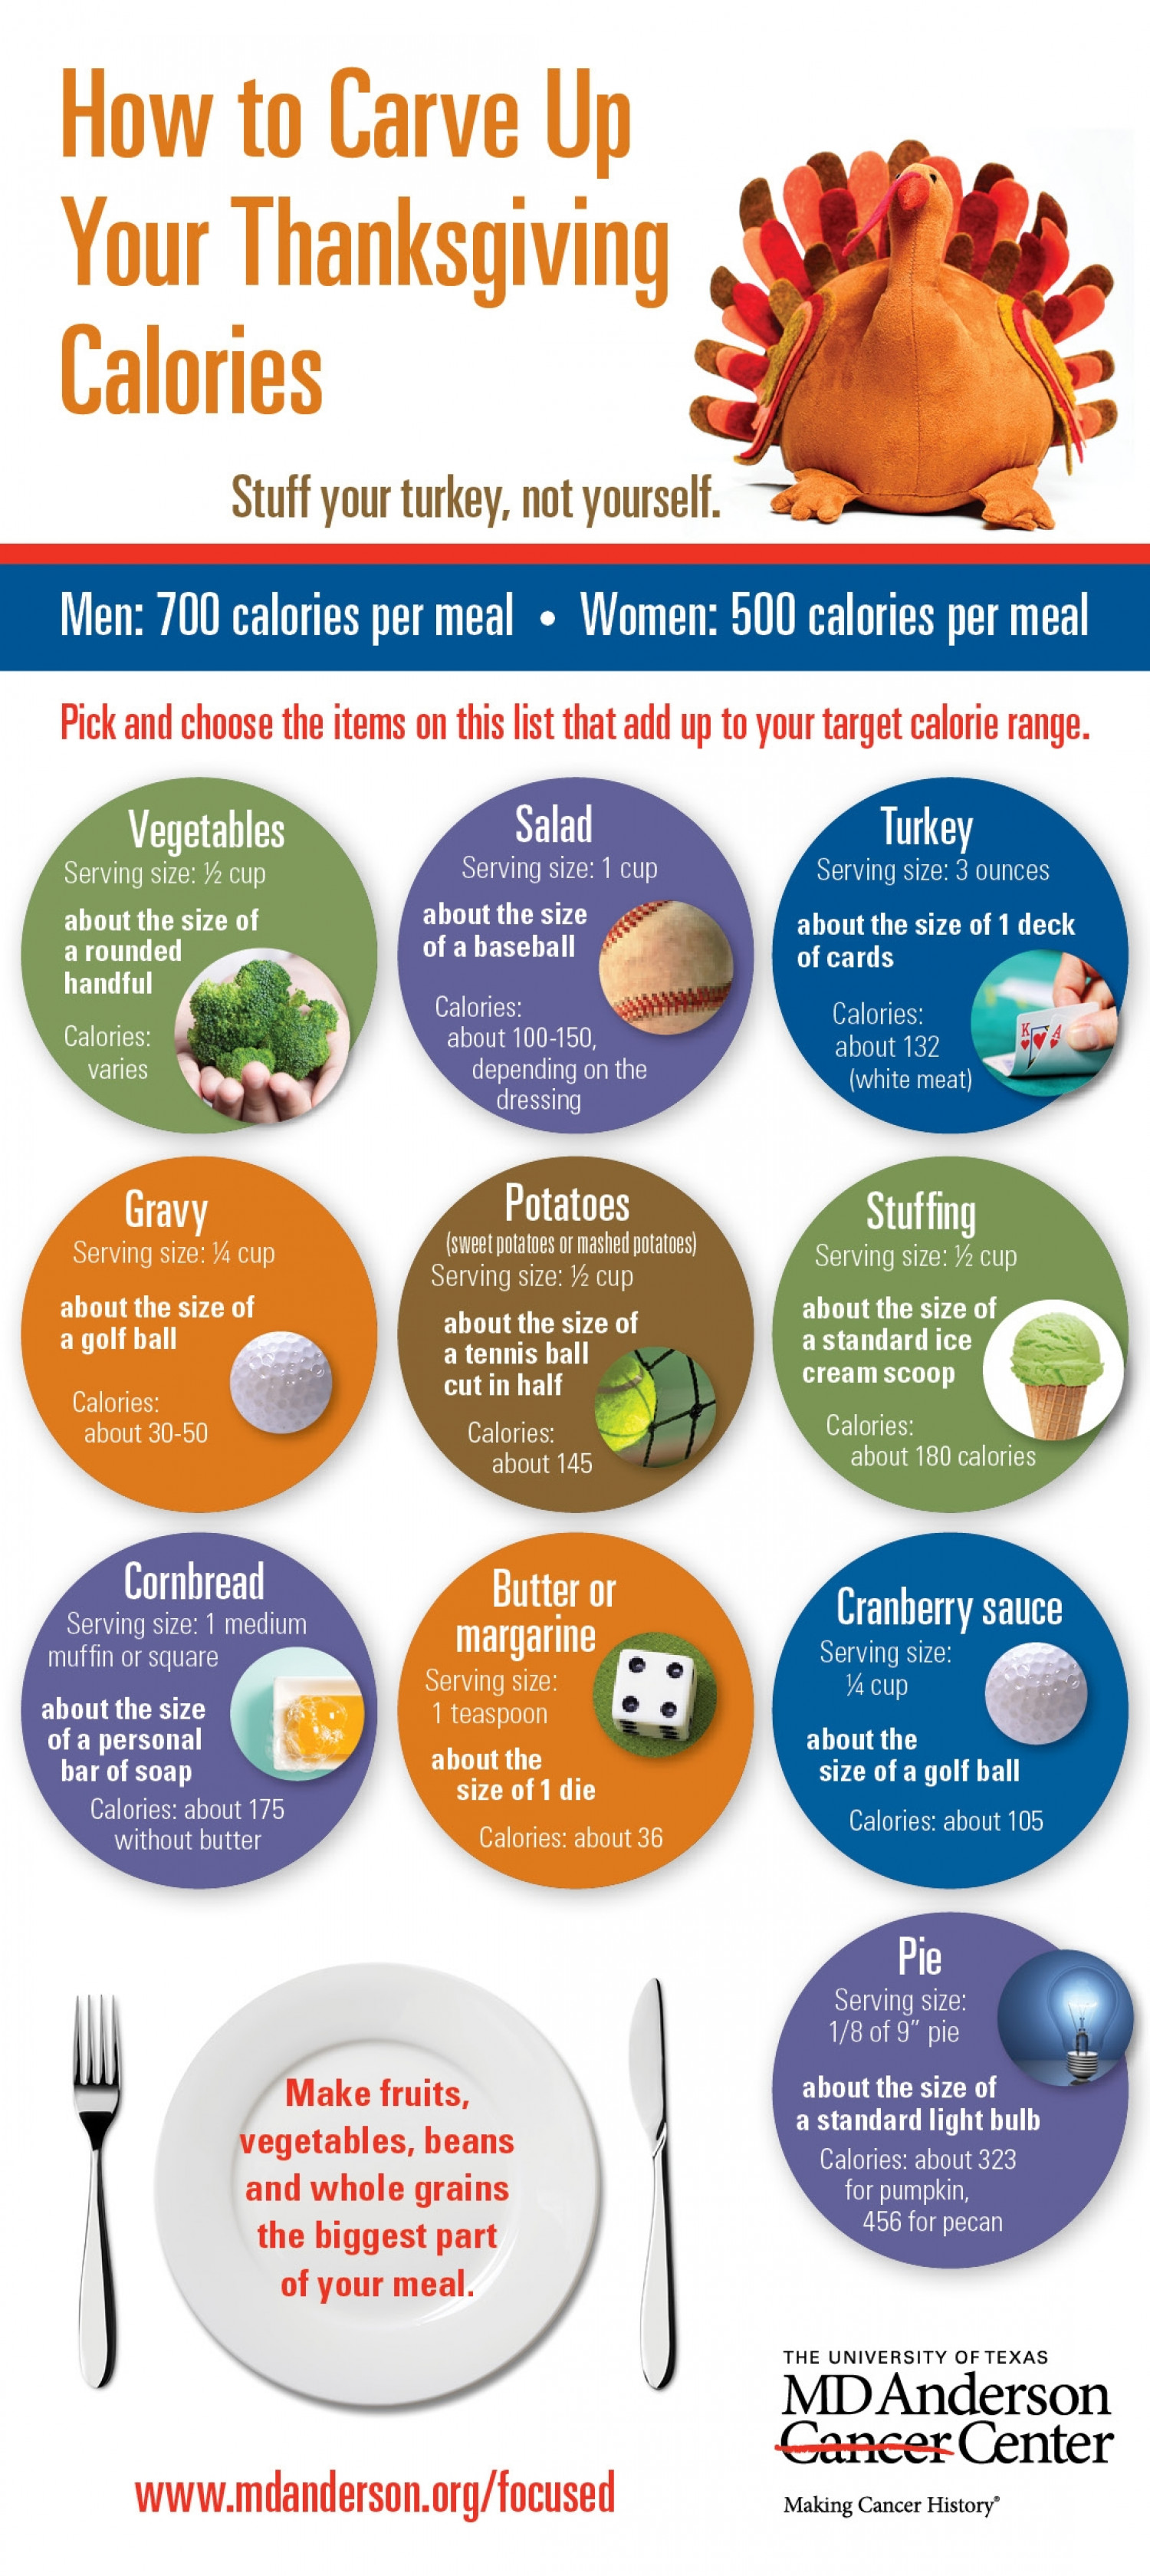 How to Carve Up Your Thanksgiving Calories Infographic